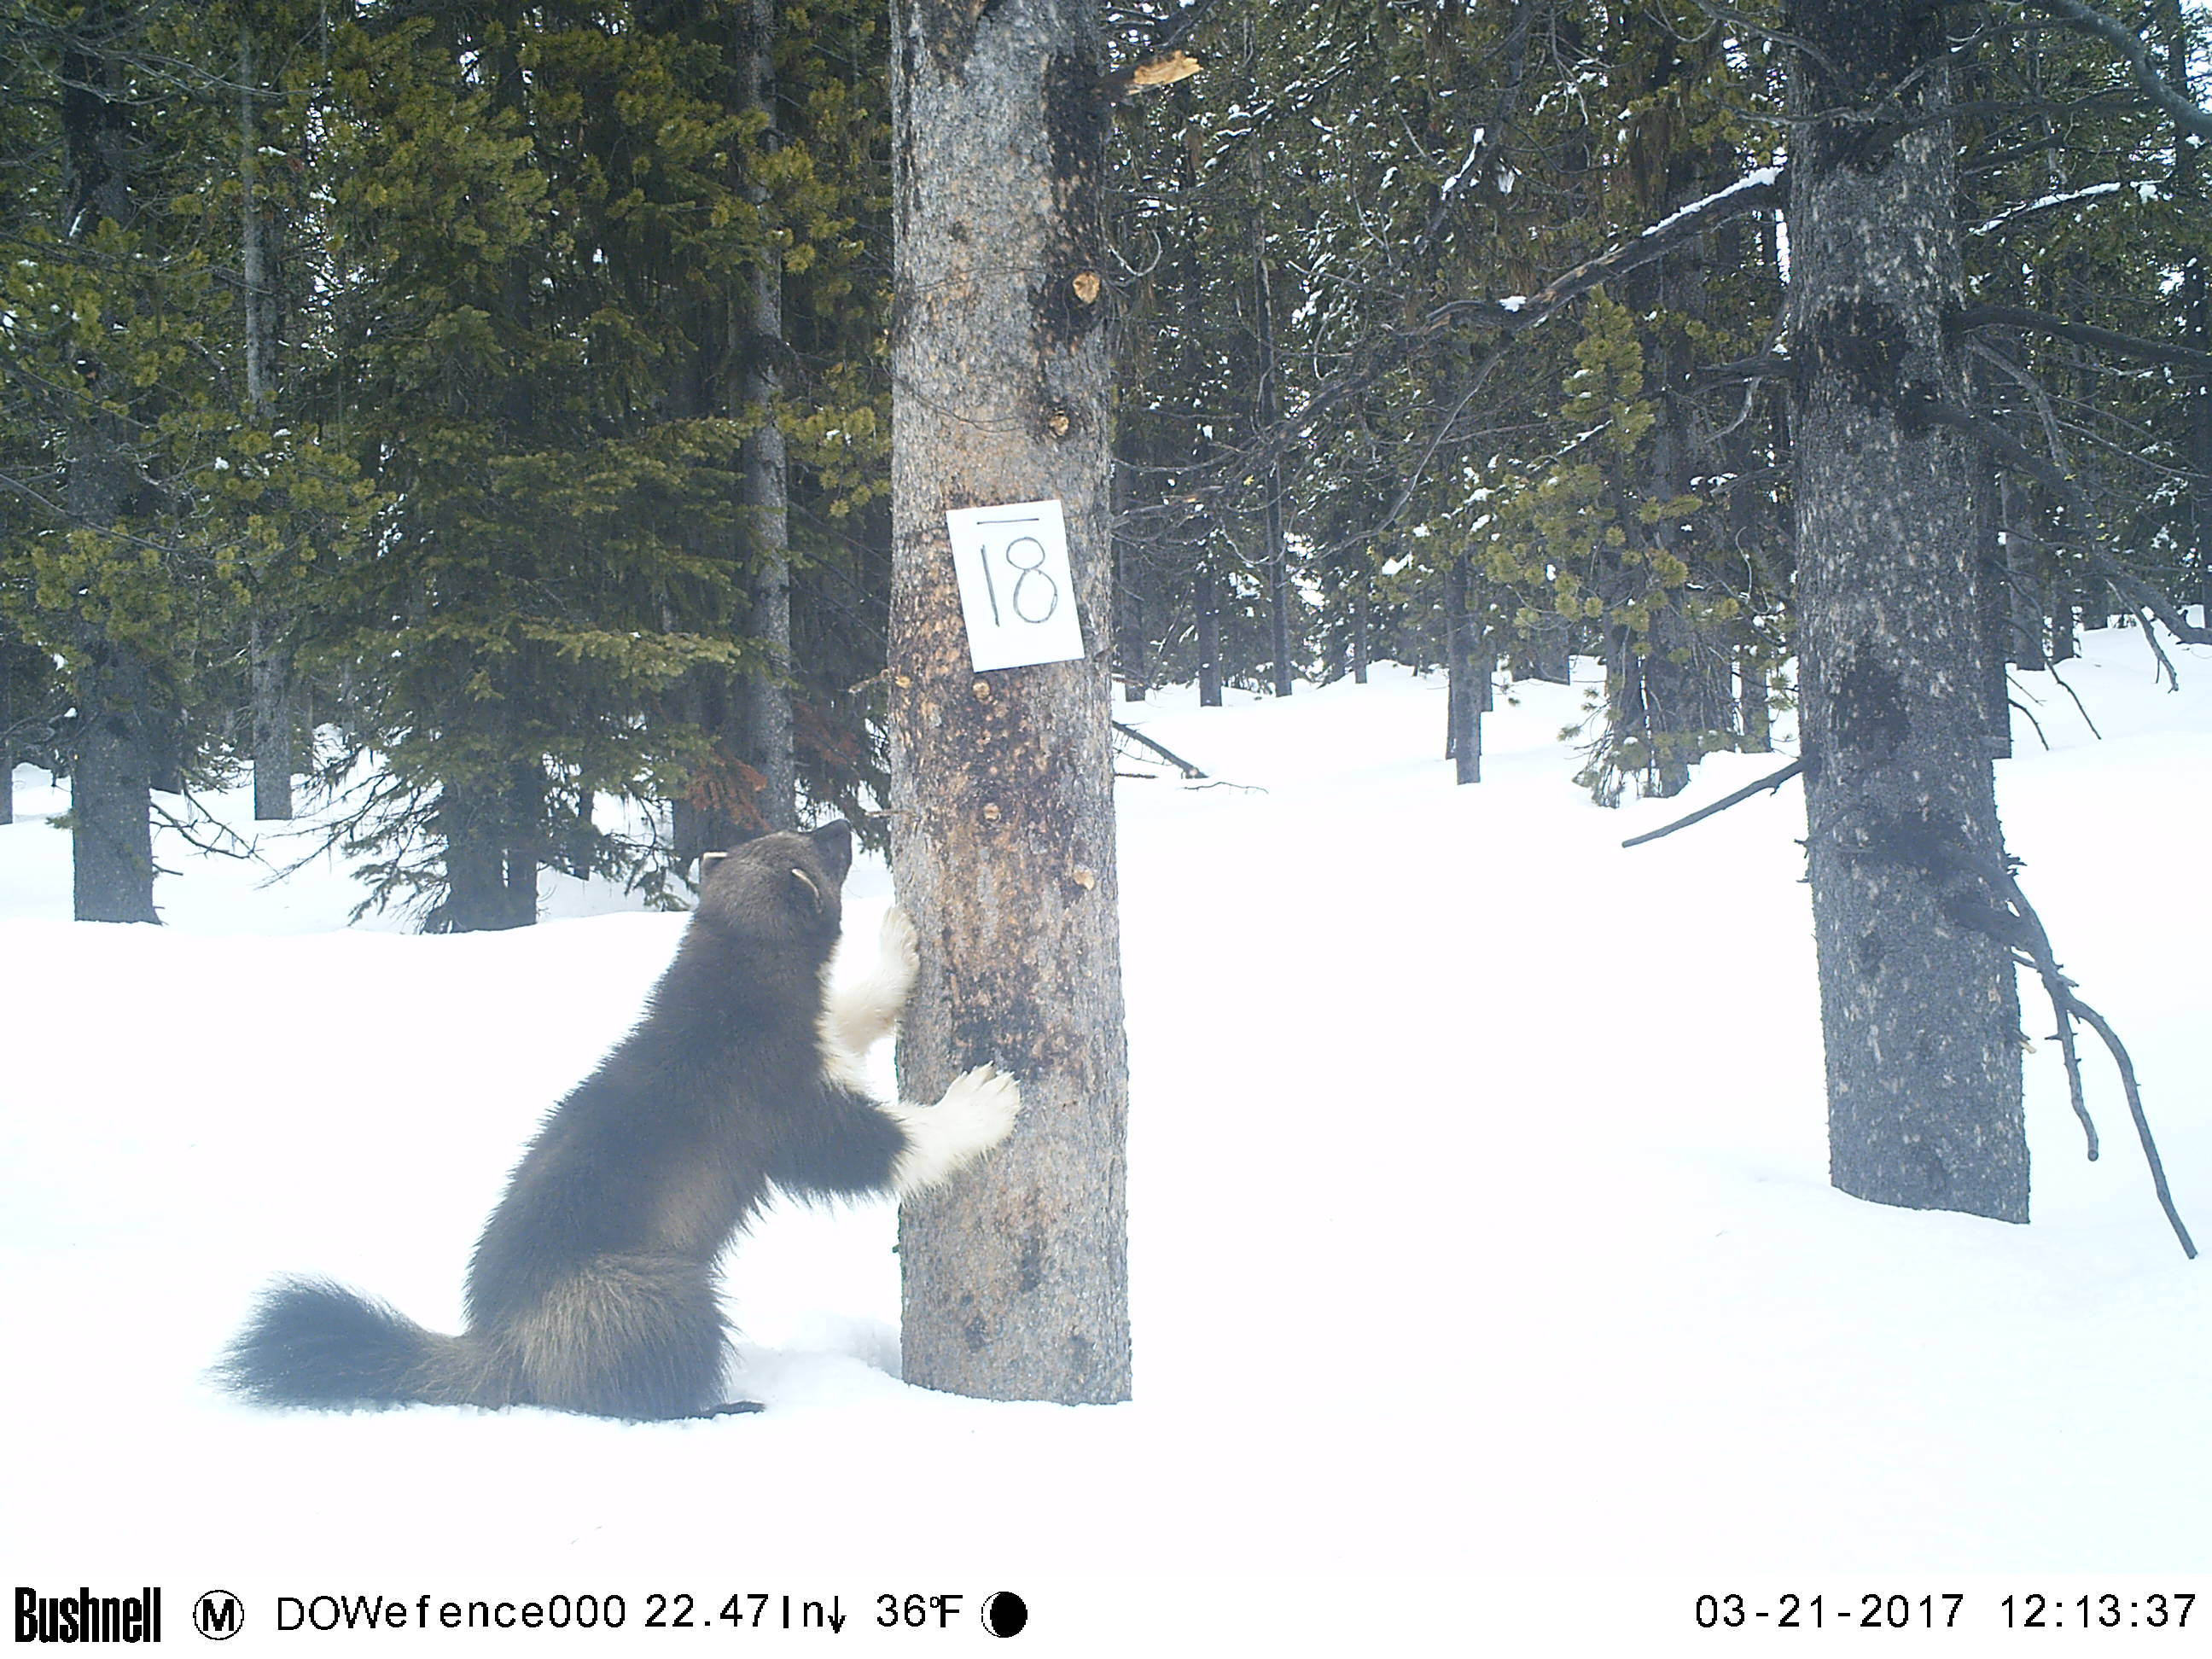 Wolverine investigating and leaning on tree on snowy ground